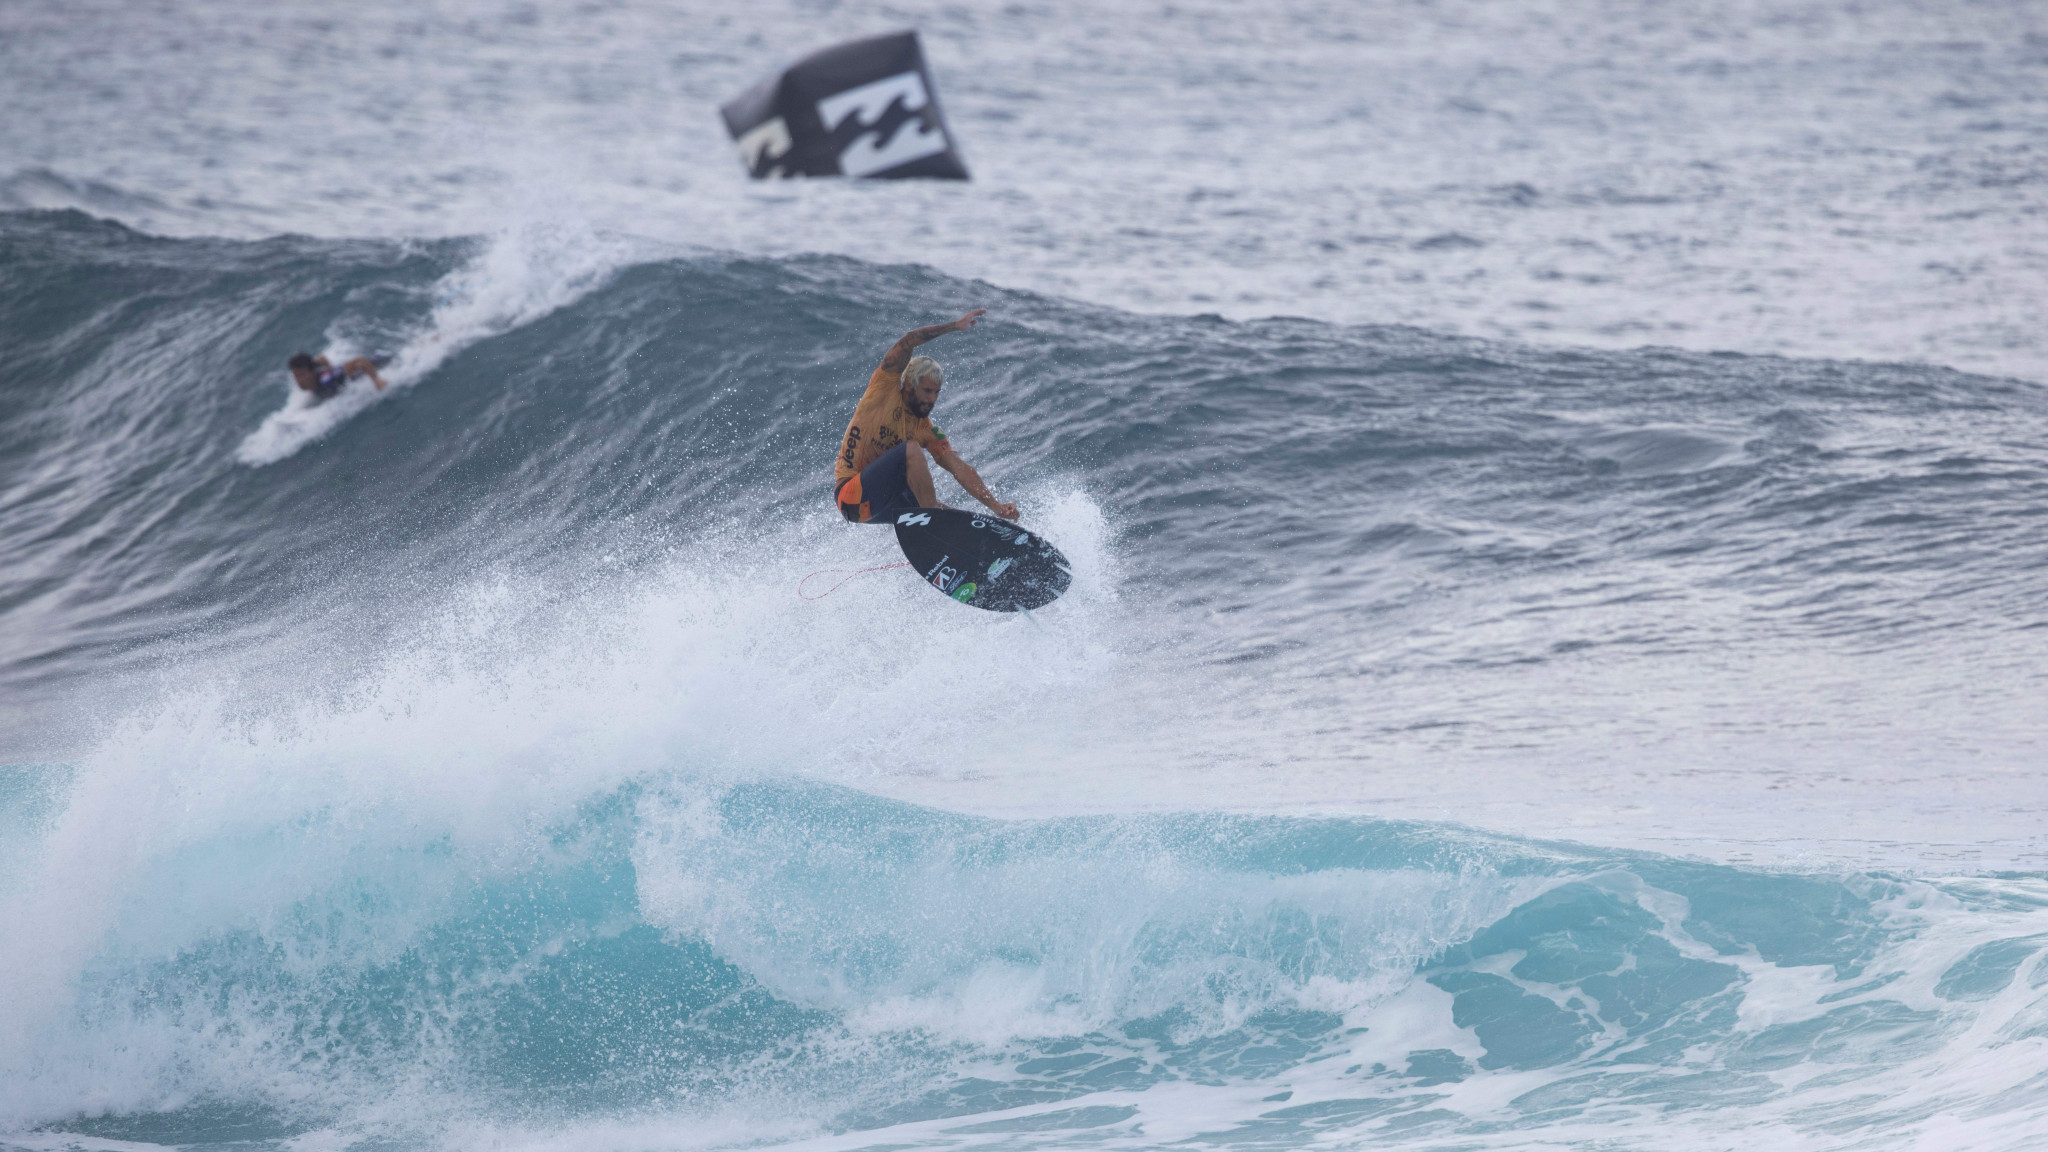 World champion Ferreira knocked out of Narrabeen World Surf League event by Coffin